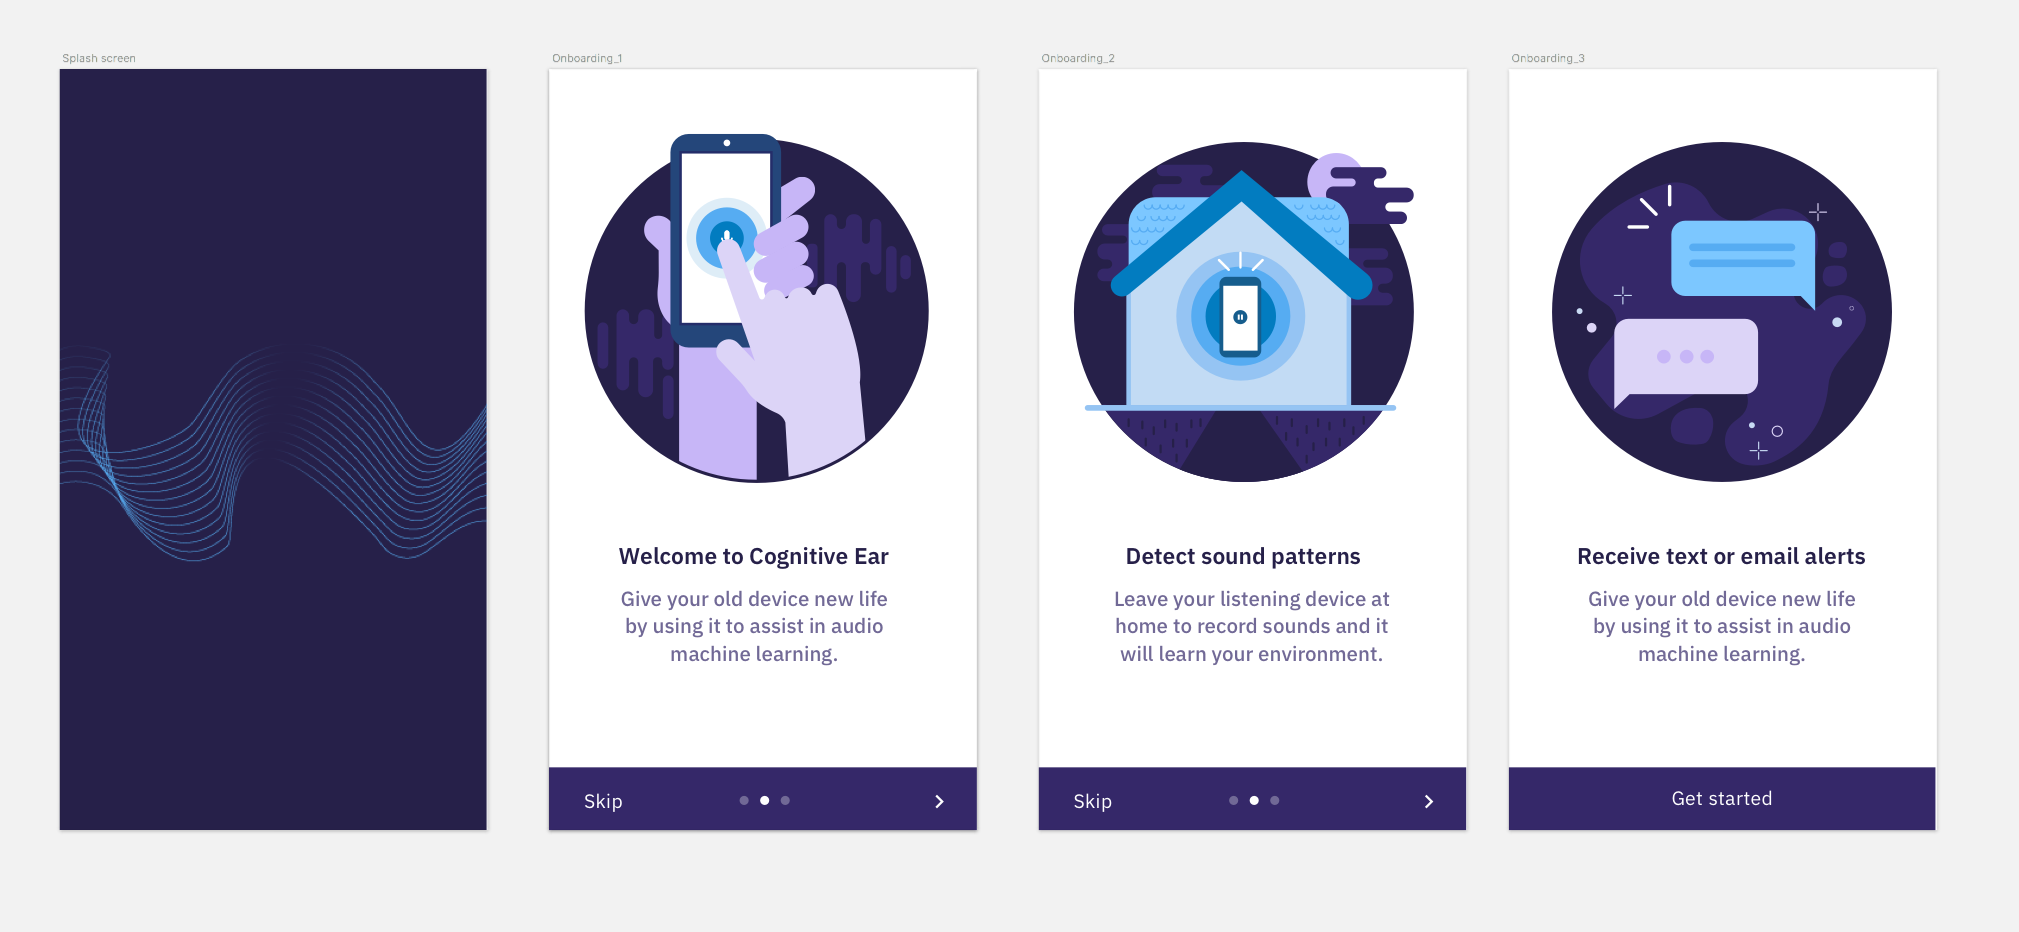 Here are some on boarding screens that I illustrated for the app.